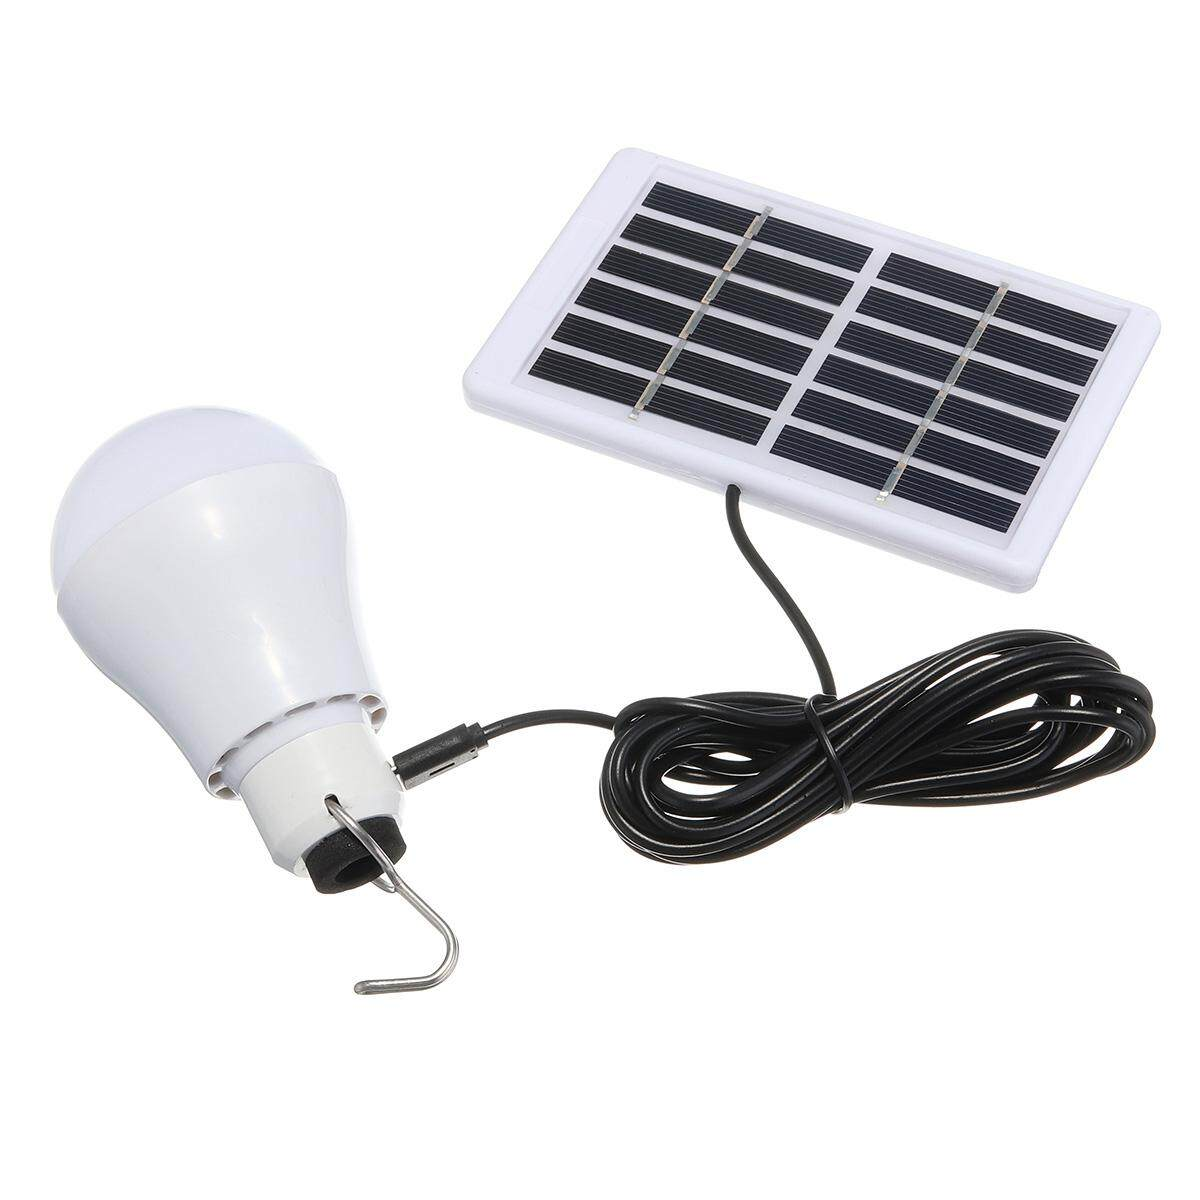 Home Outdoor Lighting Buy At Best Price In Led Garden Path Light Circuit Board 30w Solar Panel Usb Powered Bulb Indoor Camping Emergency Lamp5w